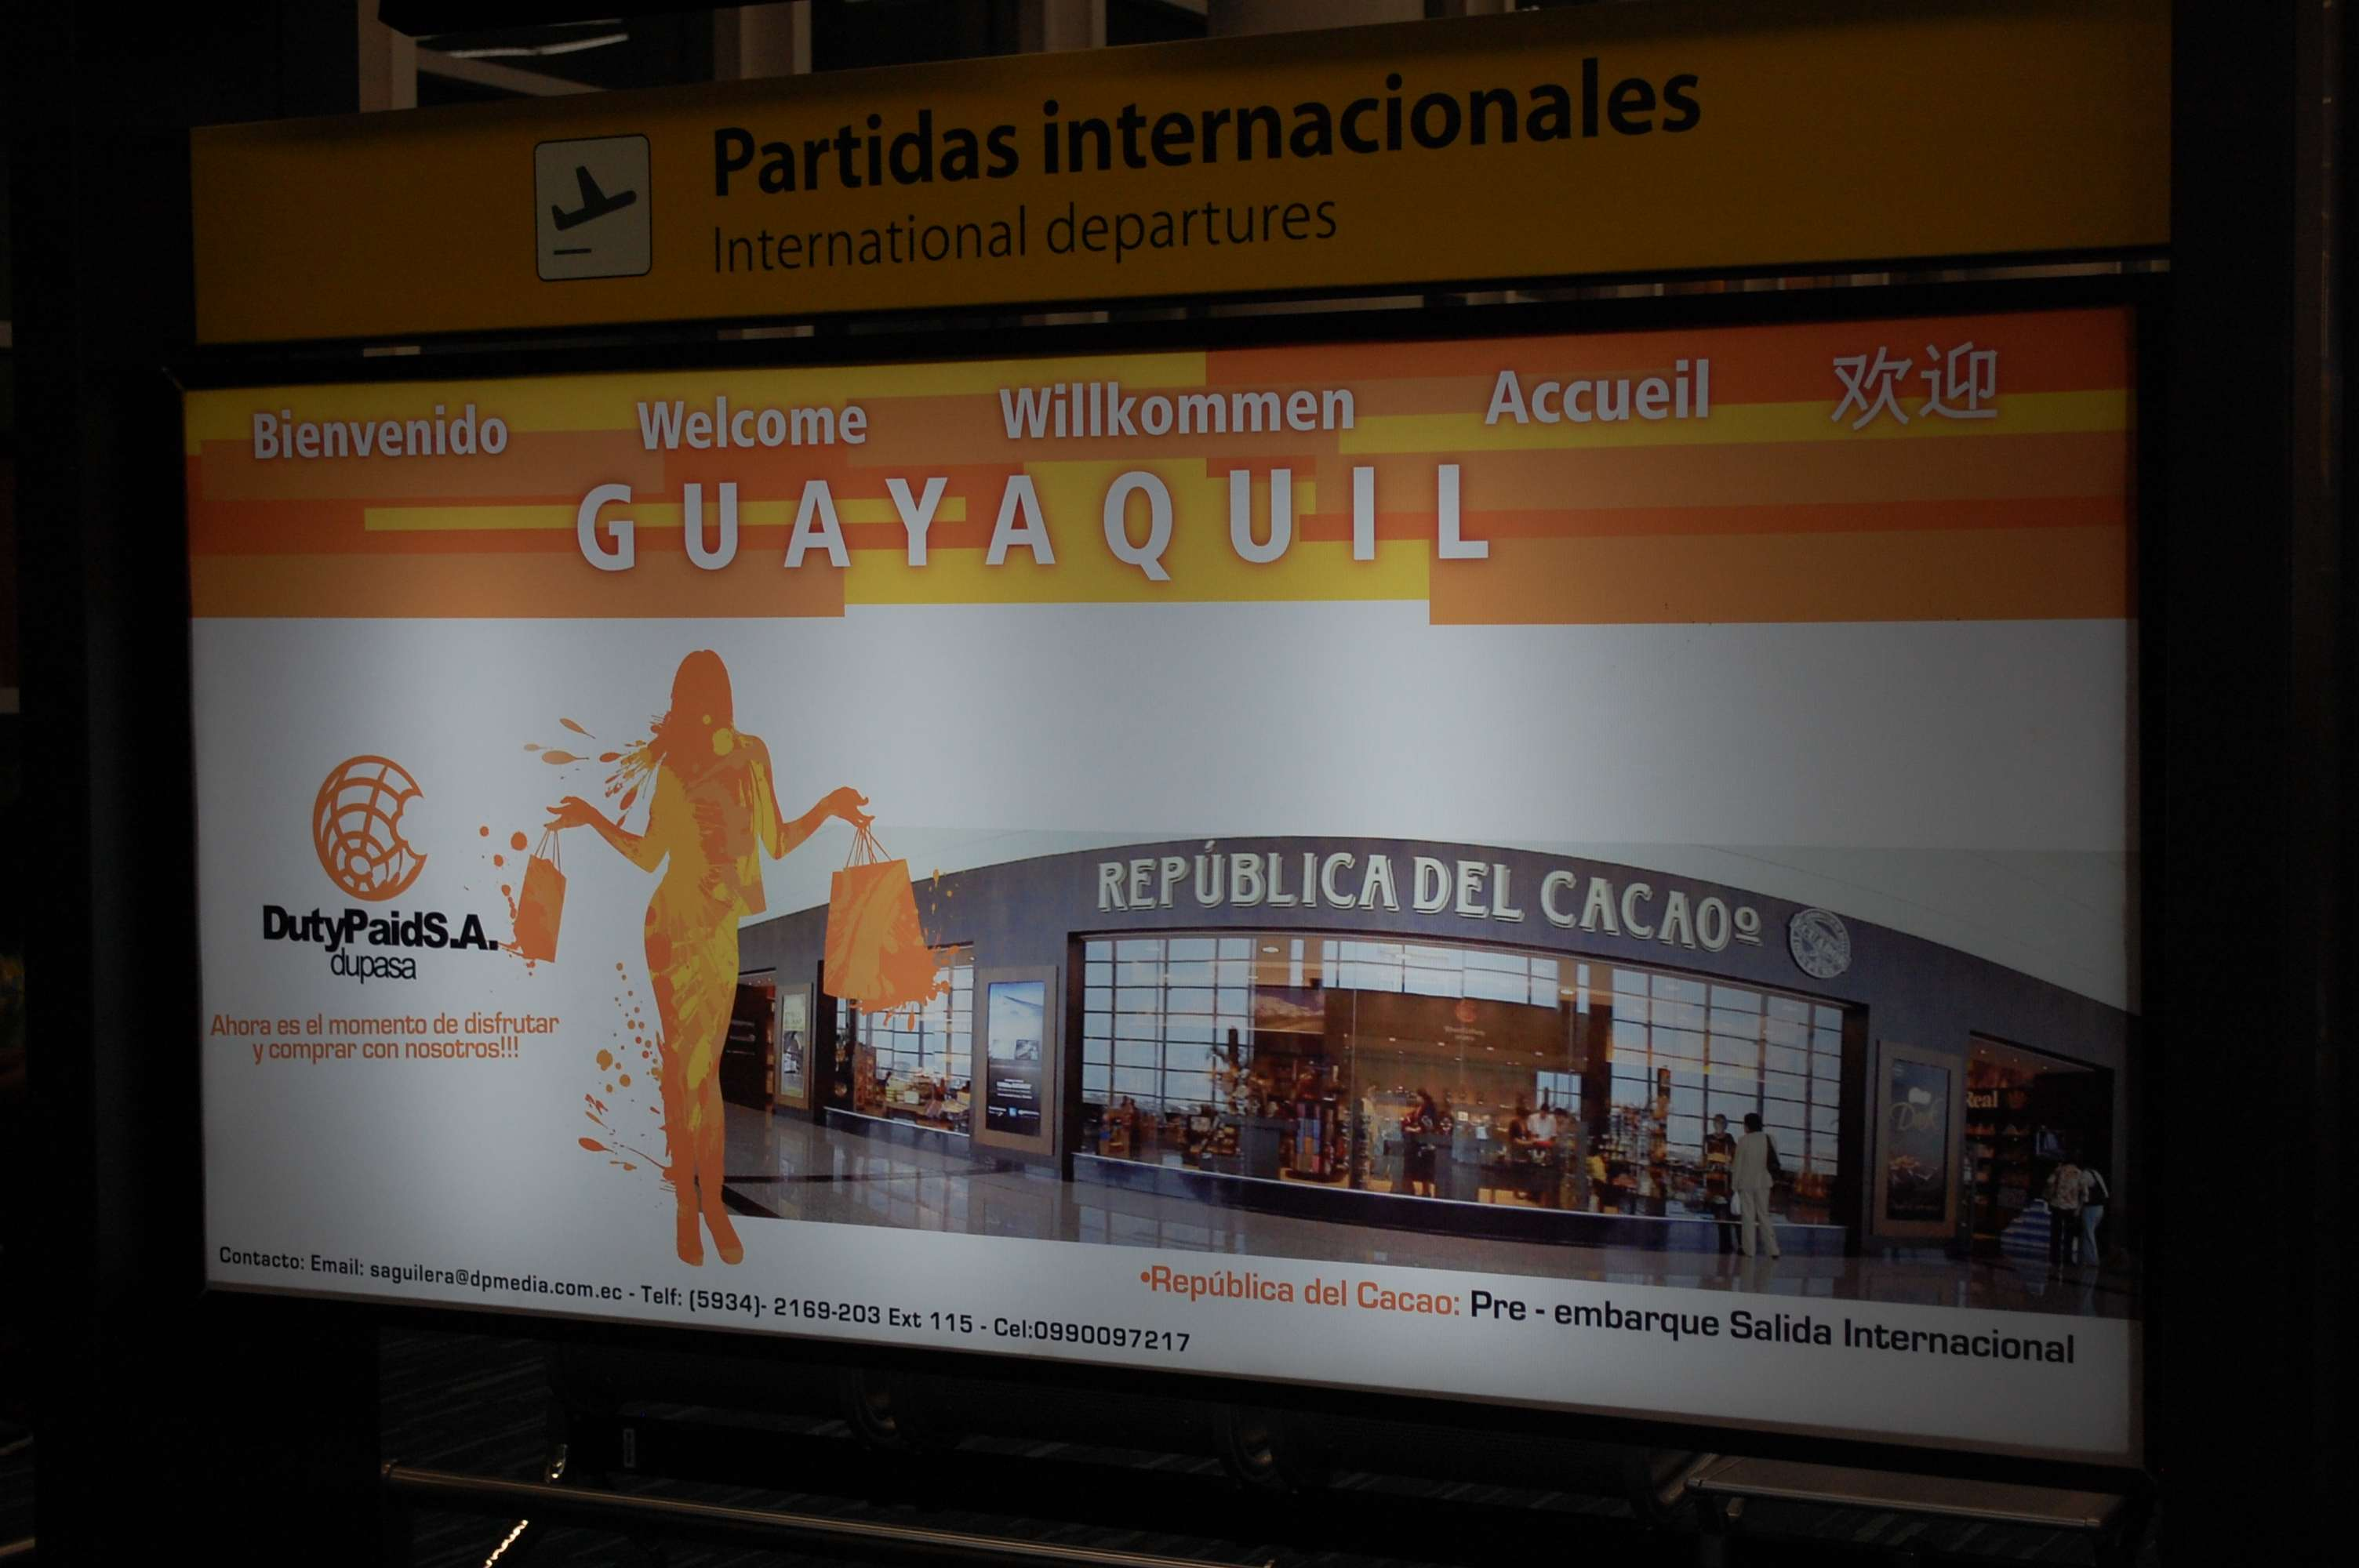 Welcome to Guayaquil sign in Ecuador airport.